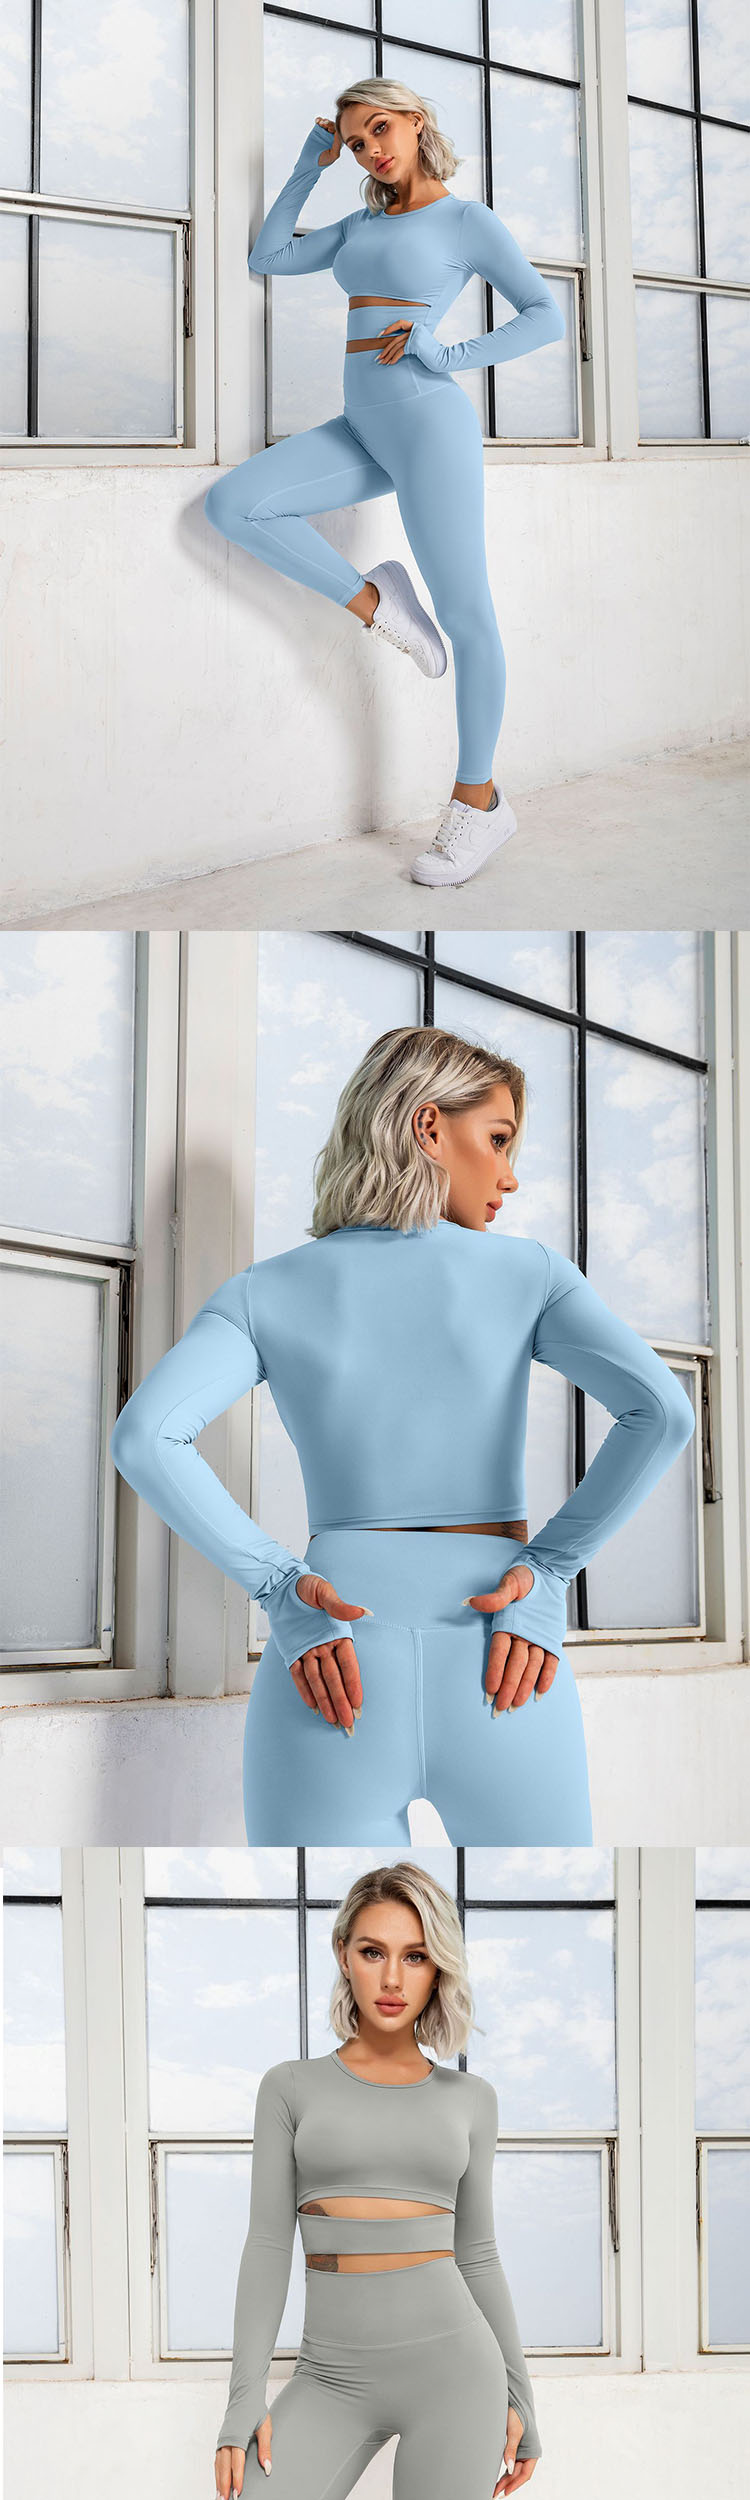 The heightened waistband design makes it comfortable to wear and fits the human skin.